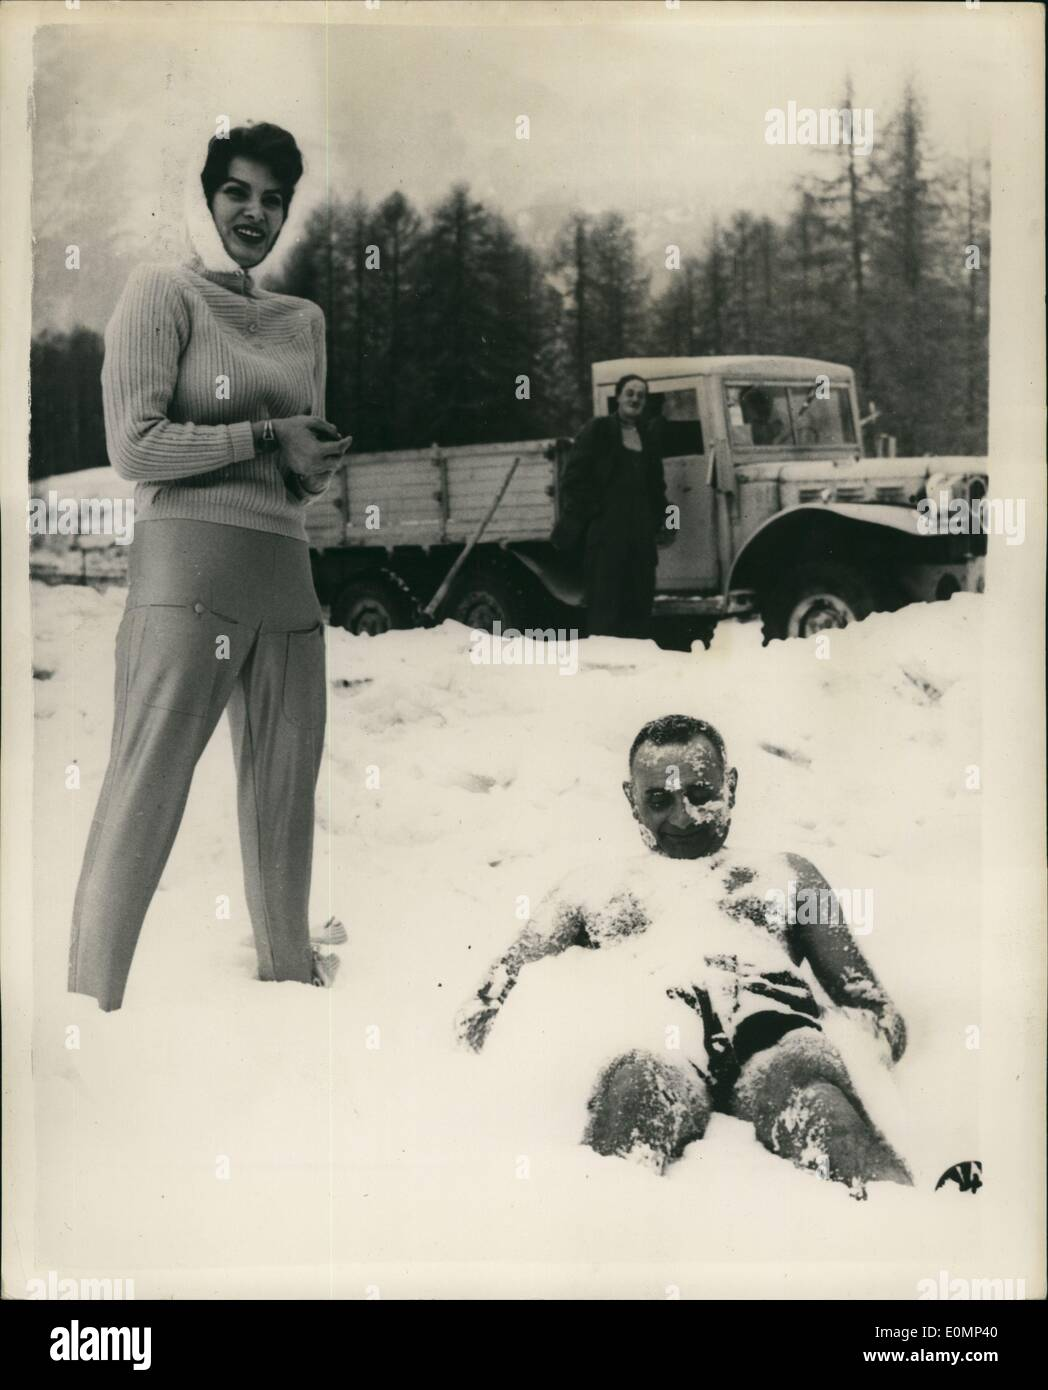 Feb. 02, 1956 - Sofia Loren Looks In At The Winter Olympics Matches A Friend Have A snow Bath: Popular Italian screen star Sofia Loren was one of the very popular visitors to the winter Olympic Gamest at Cortina d'Ampezze - and show is seen he as she looks on at man friend who enjoys a snow-bath in the ''too celd for me'' - says Befia. - Stock Image